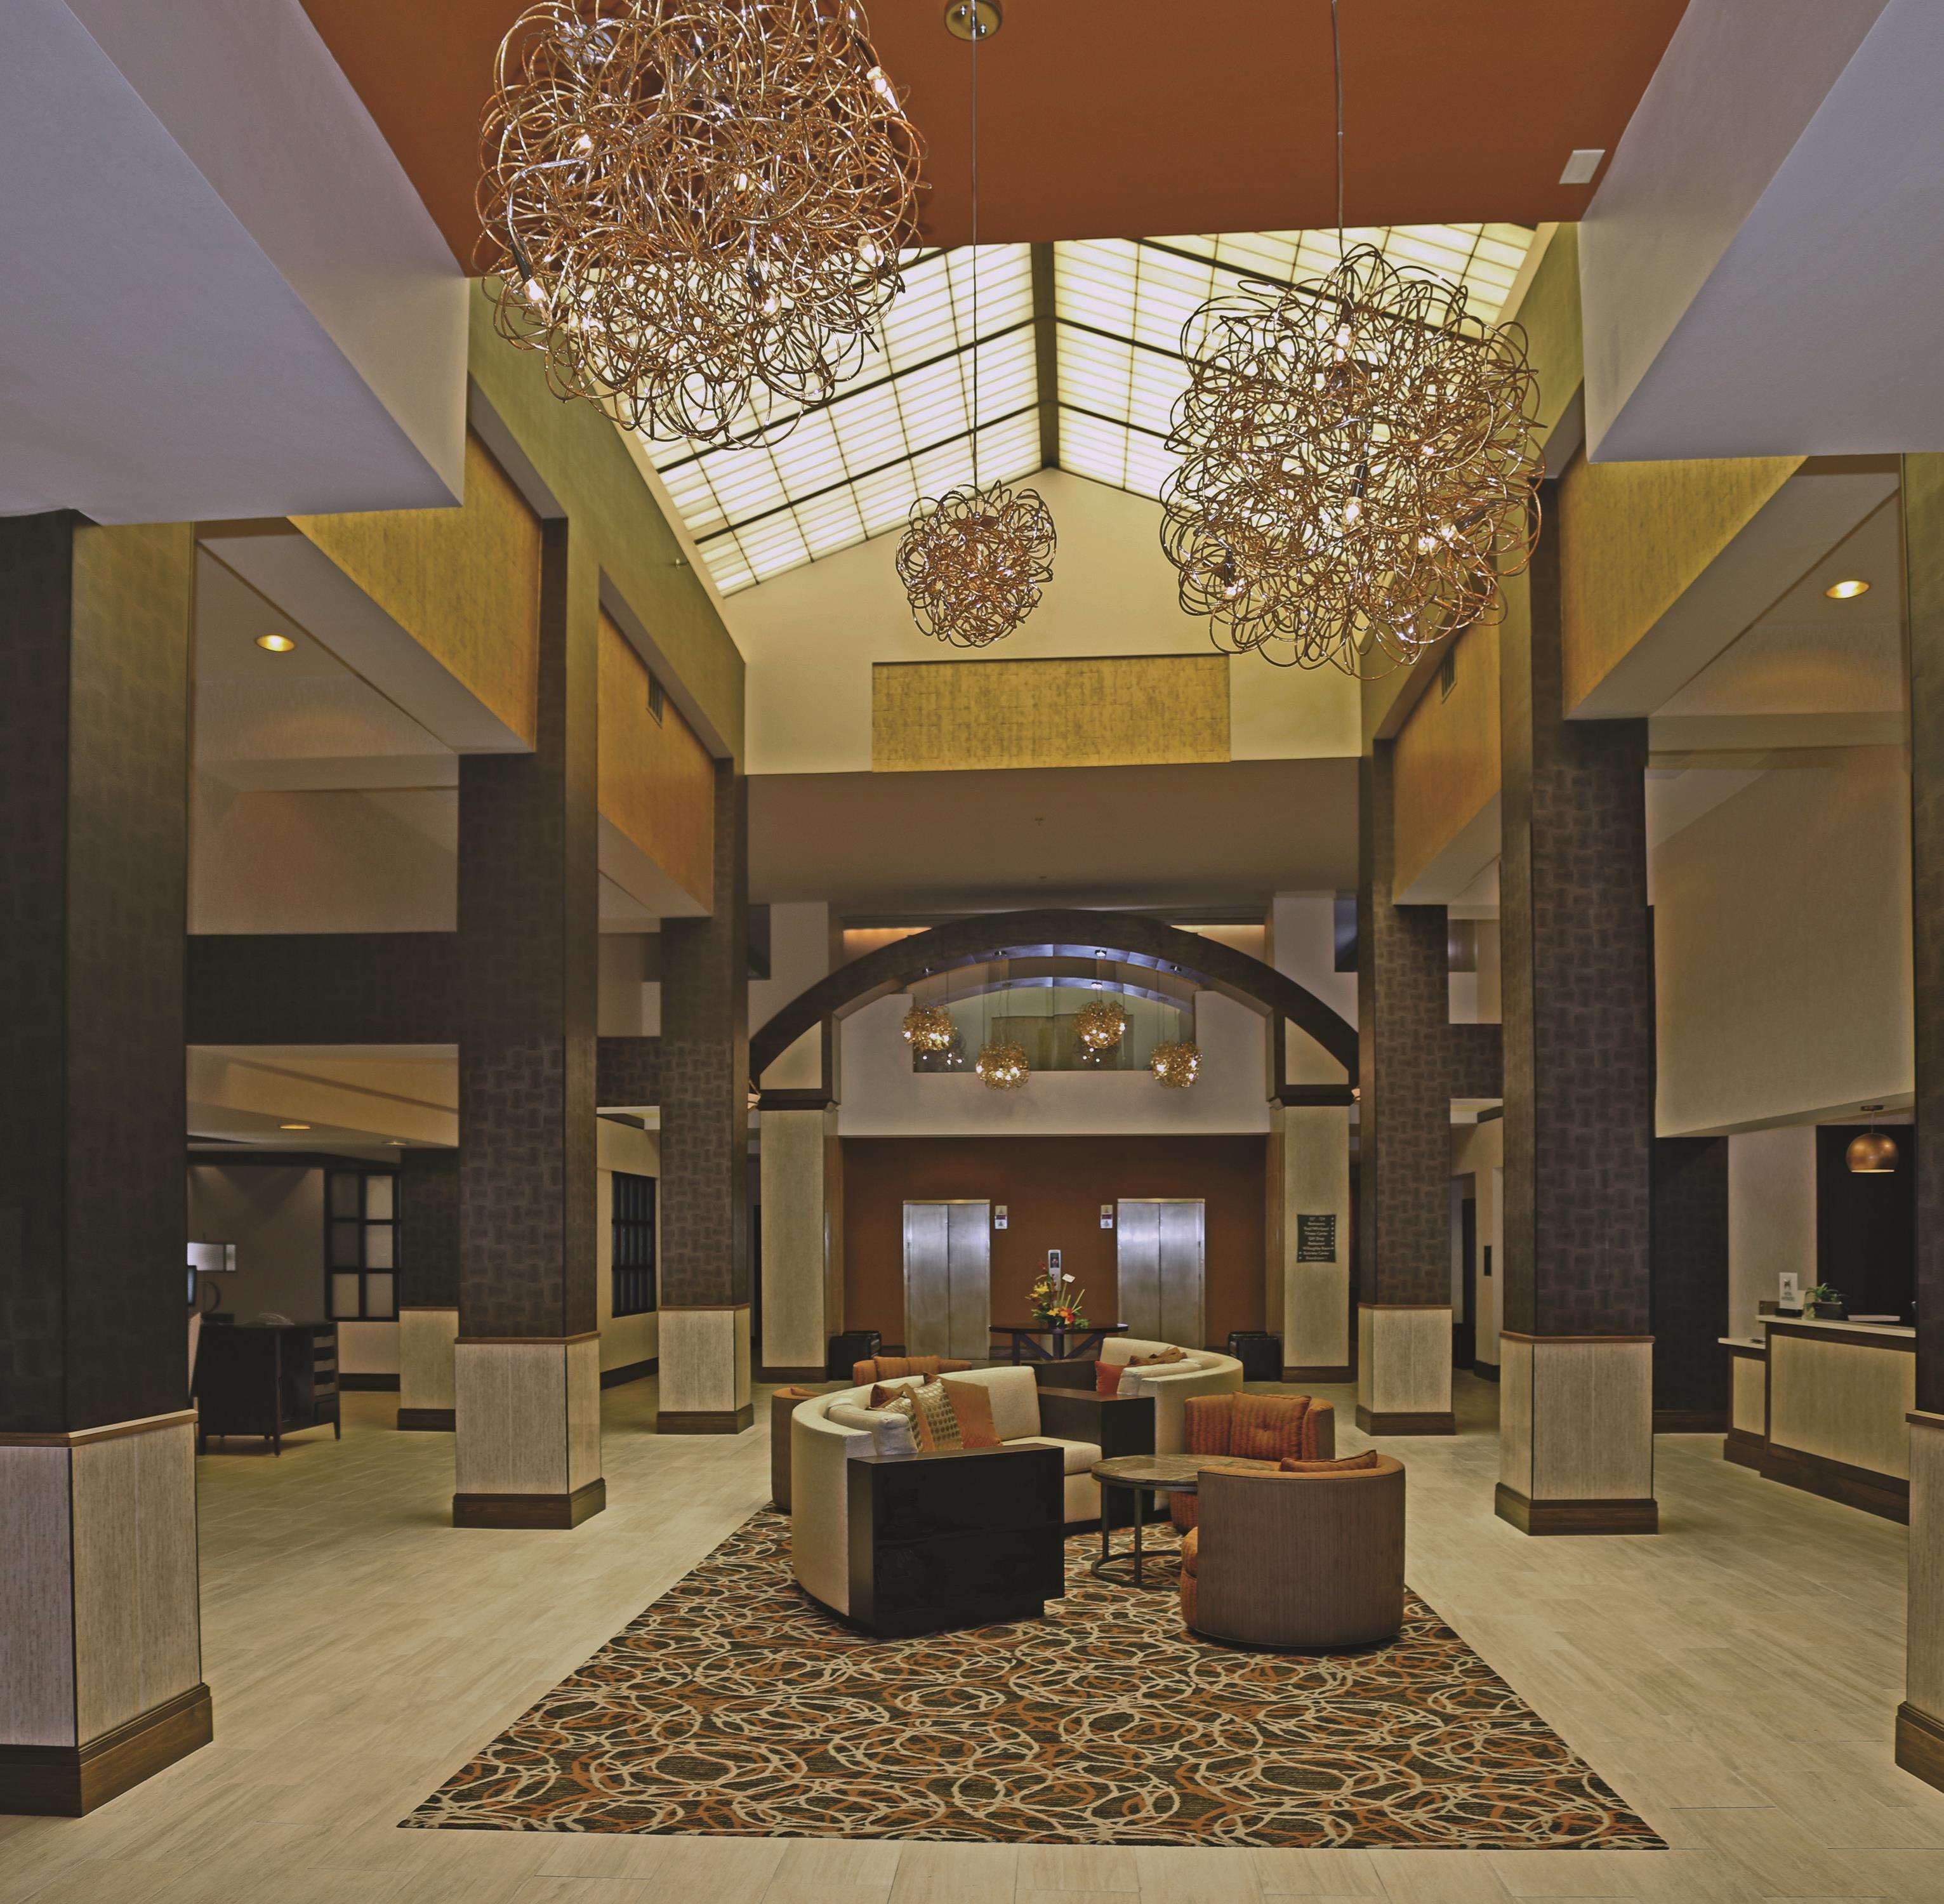 DoubleTree by Hilton Hotel Norfolk Airport image 1